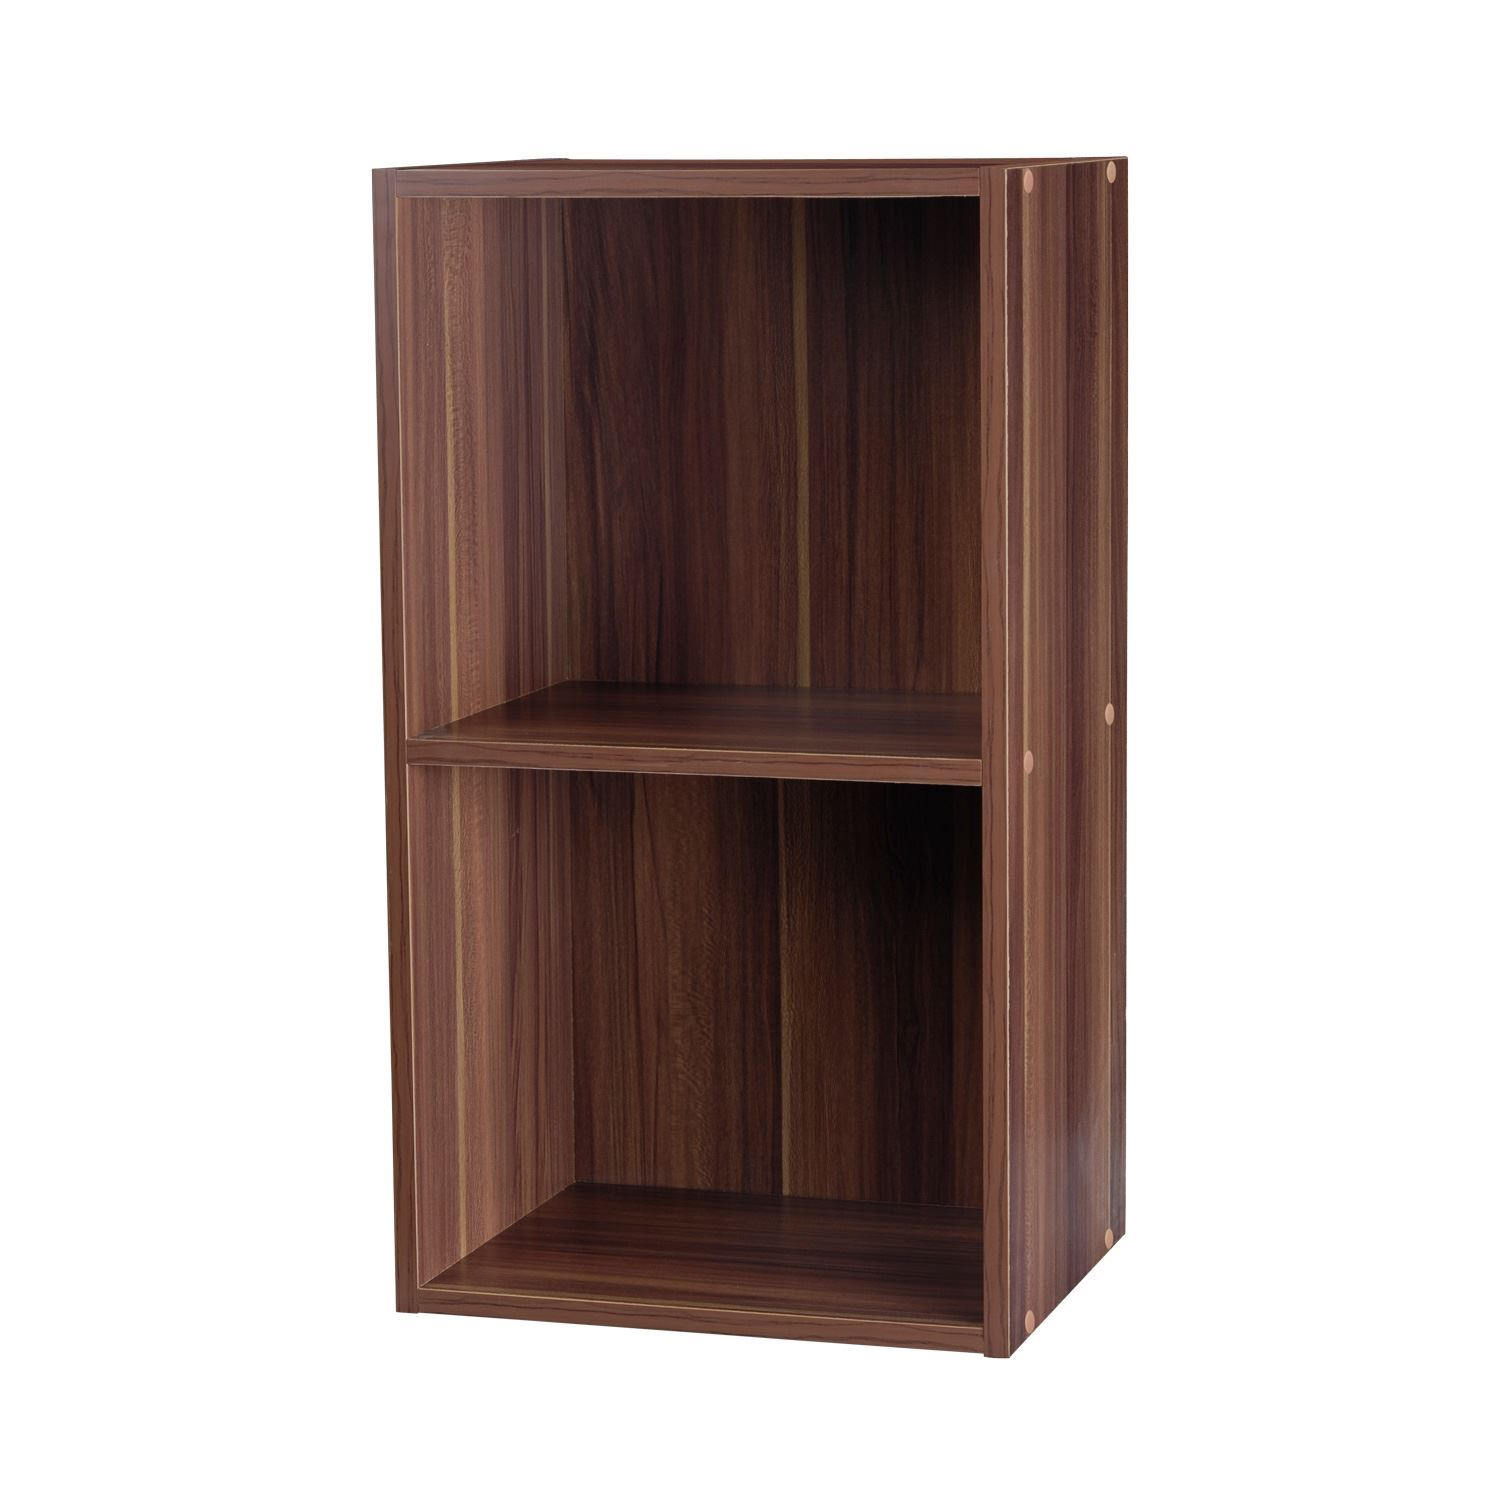 Wooden Bookcase Display Storage Shelving Shelves Wood Shelf Unit New